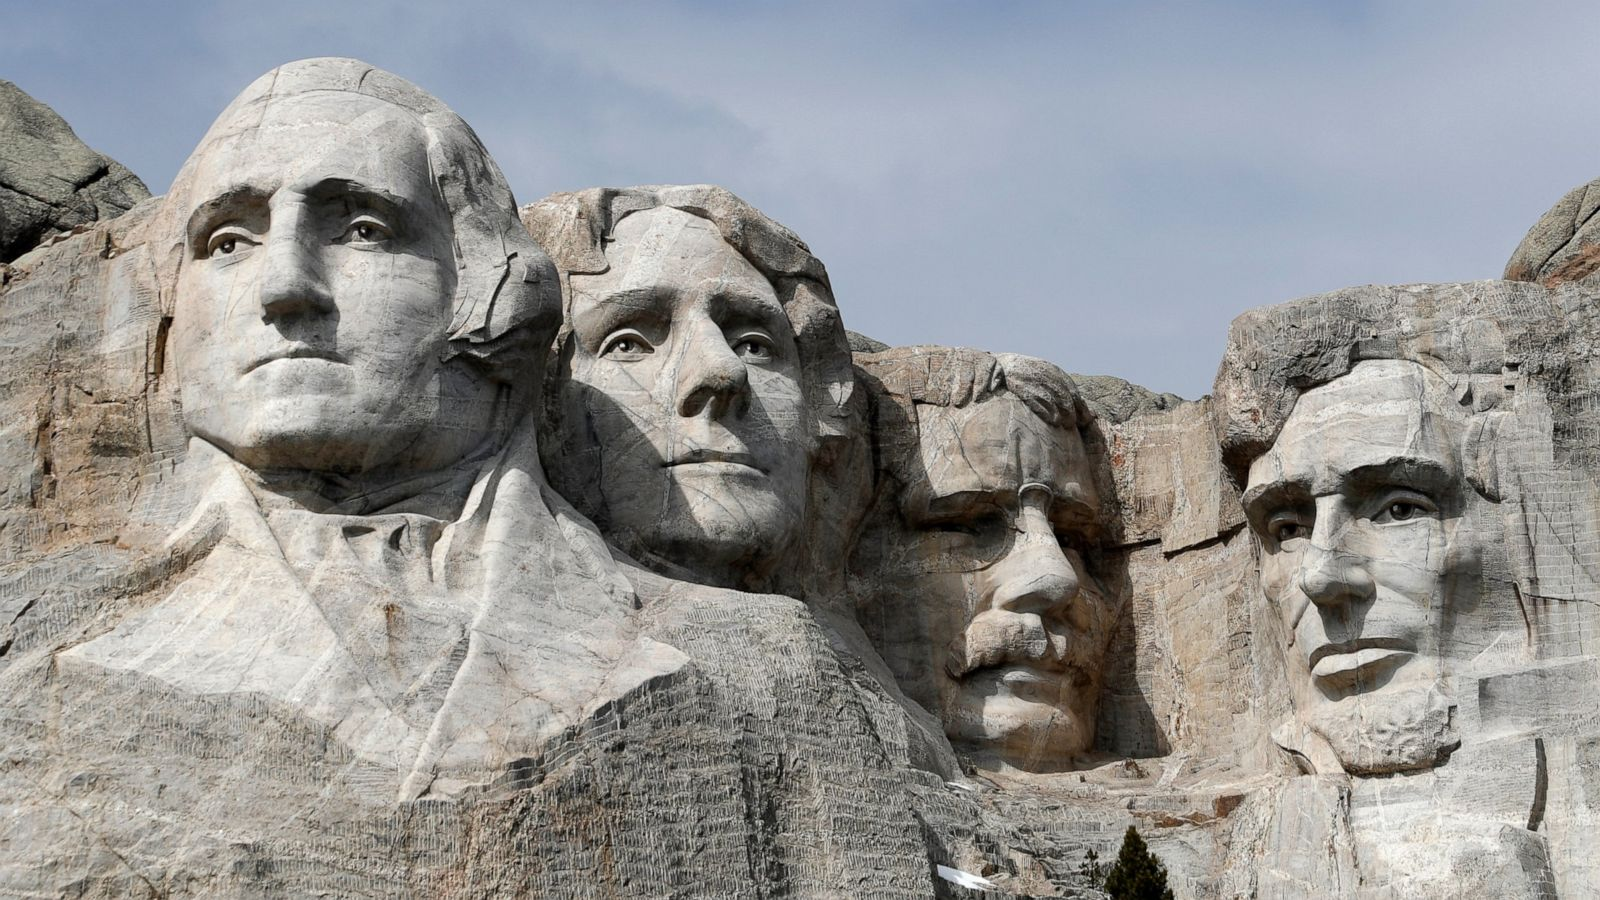 Mount Rushmore Memorial to begin major construction projects - ABC ...